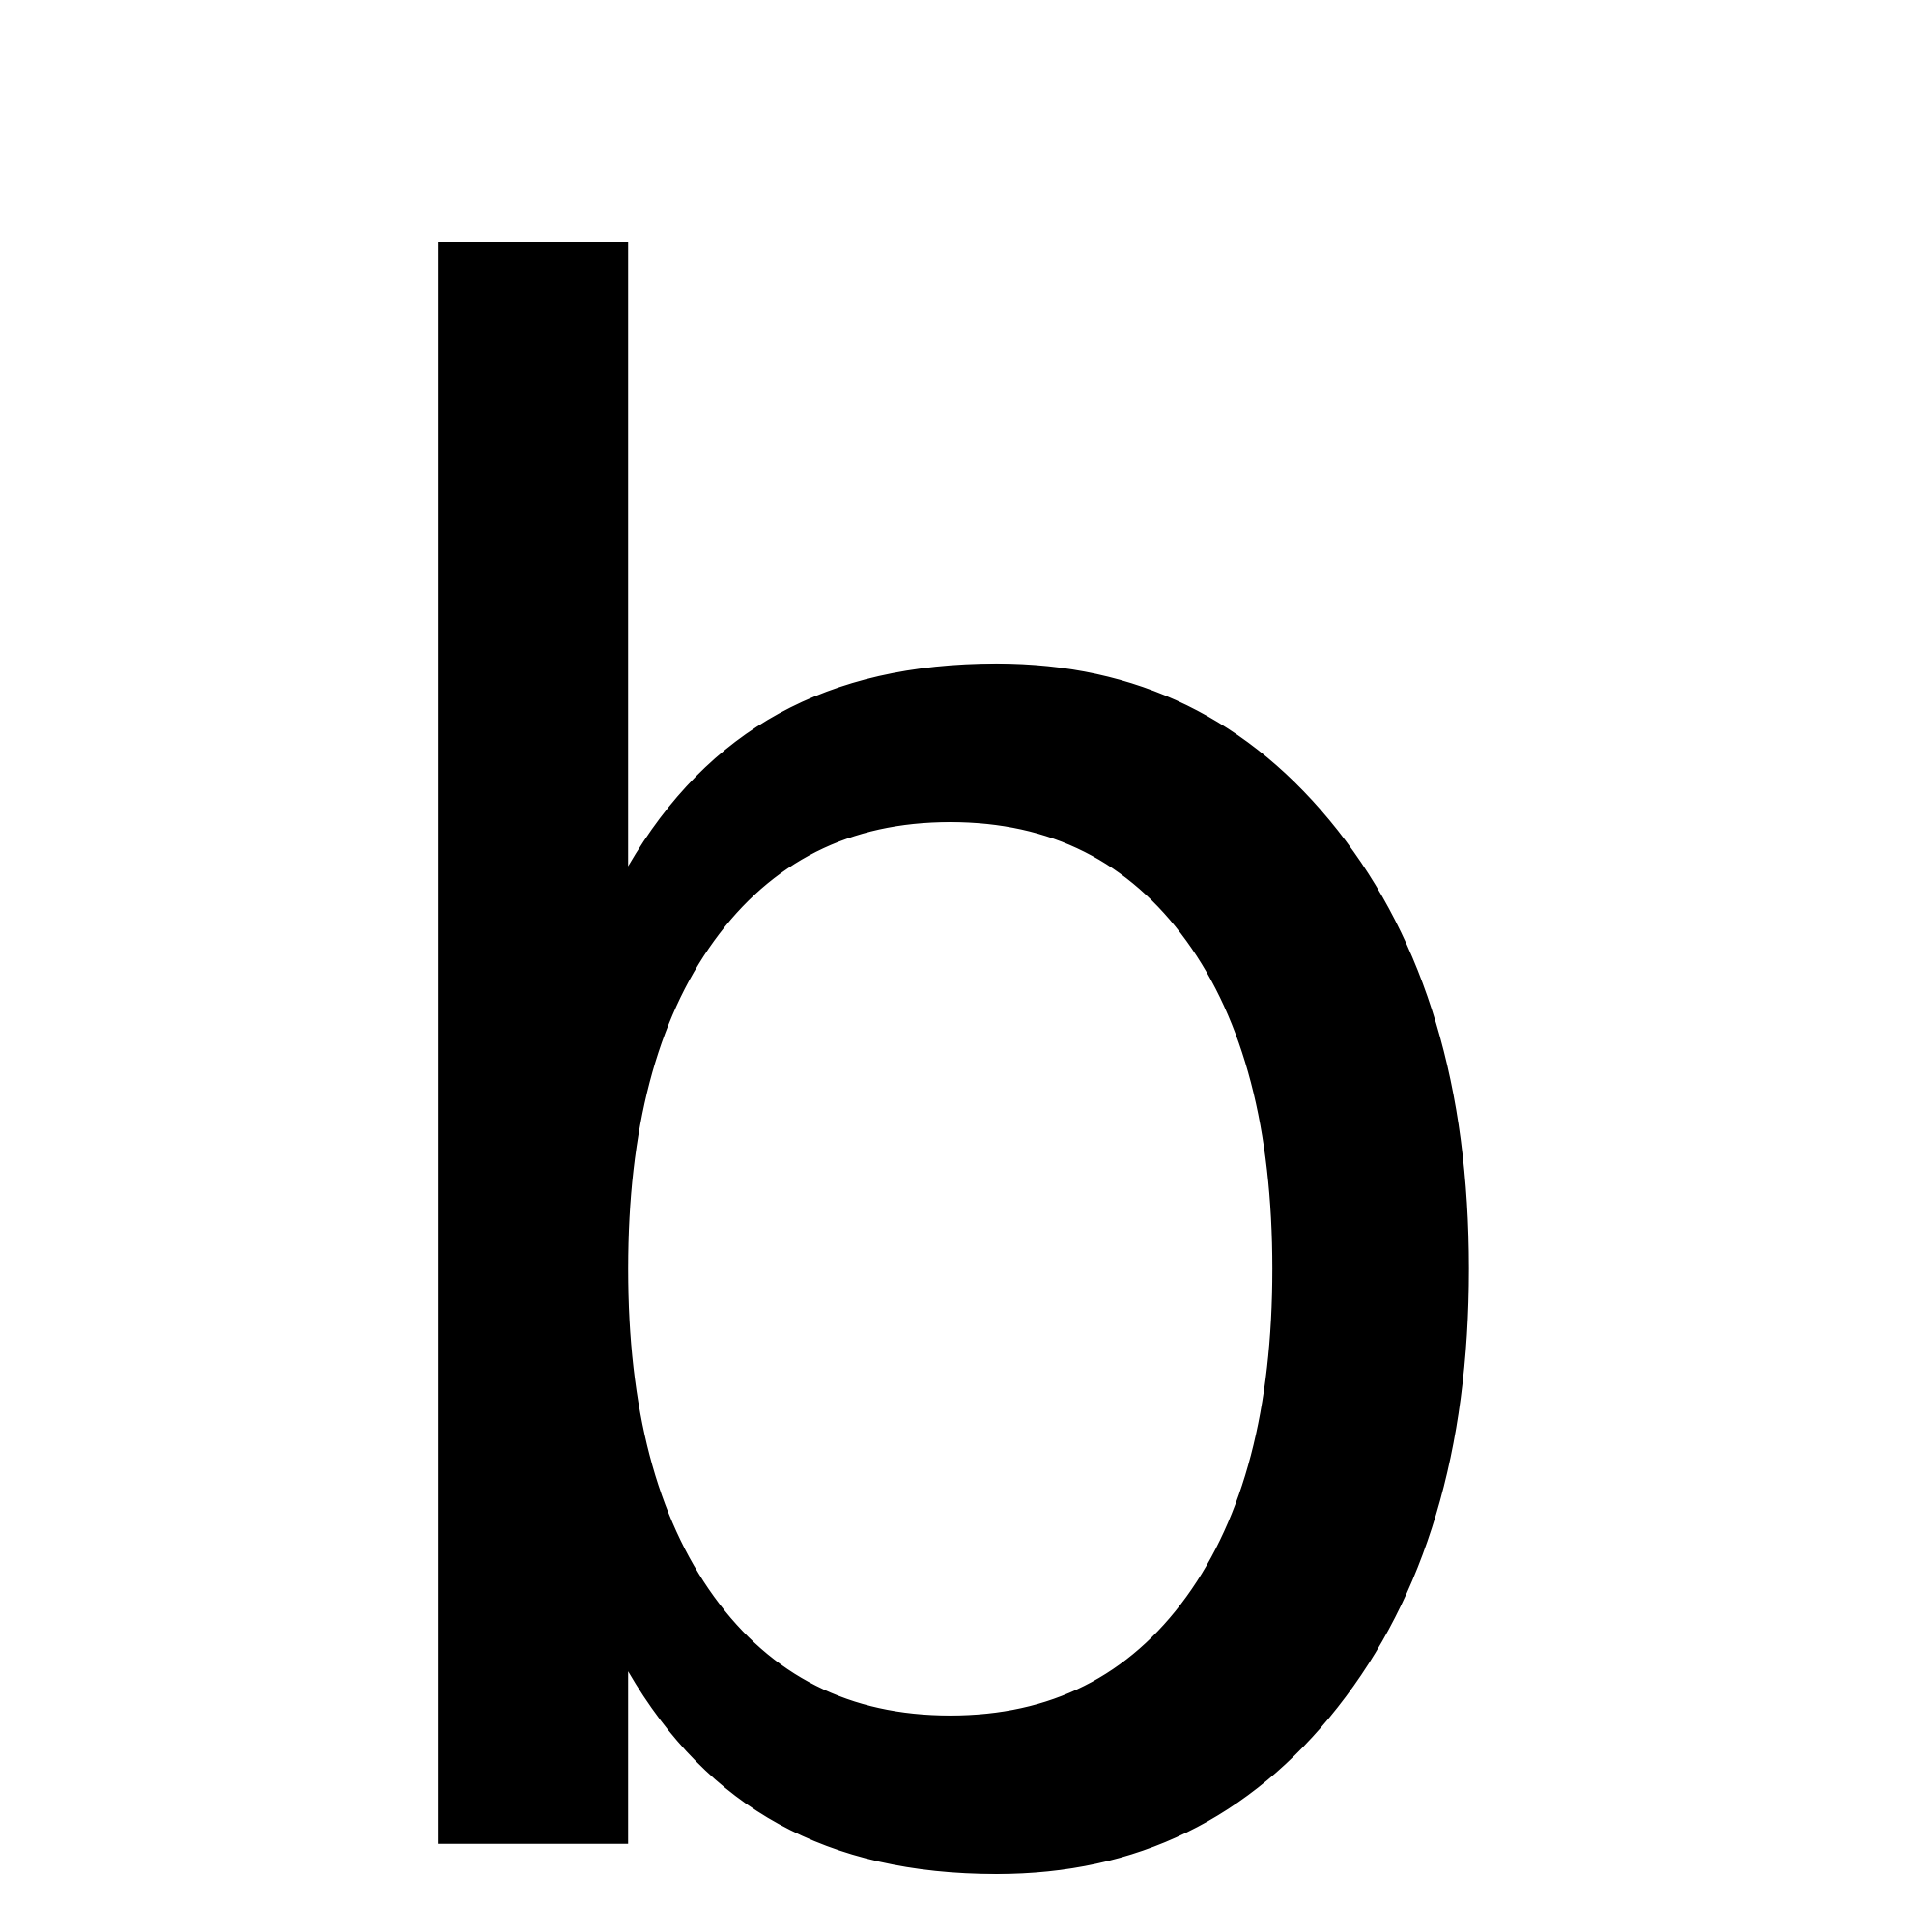 B letter png. File svg wikimedia commons